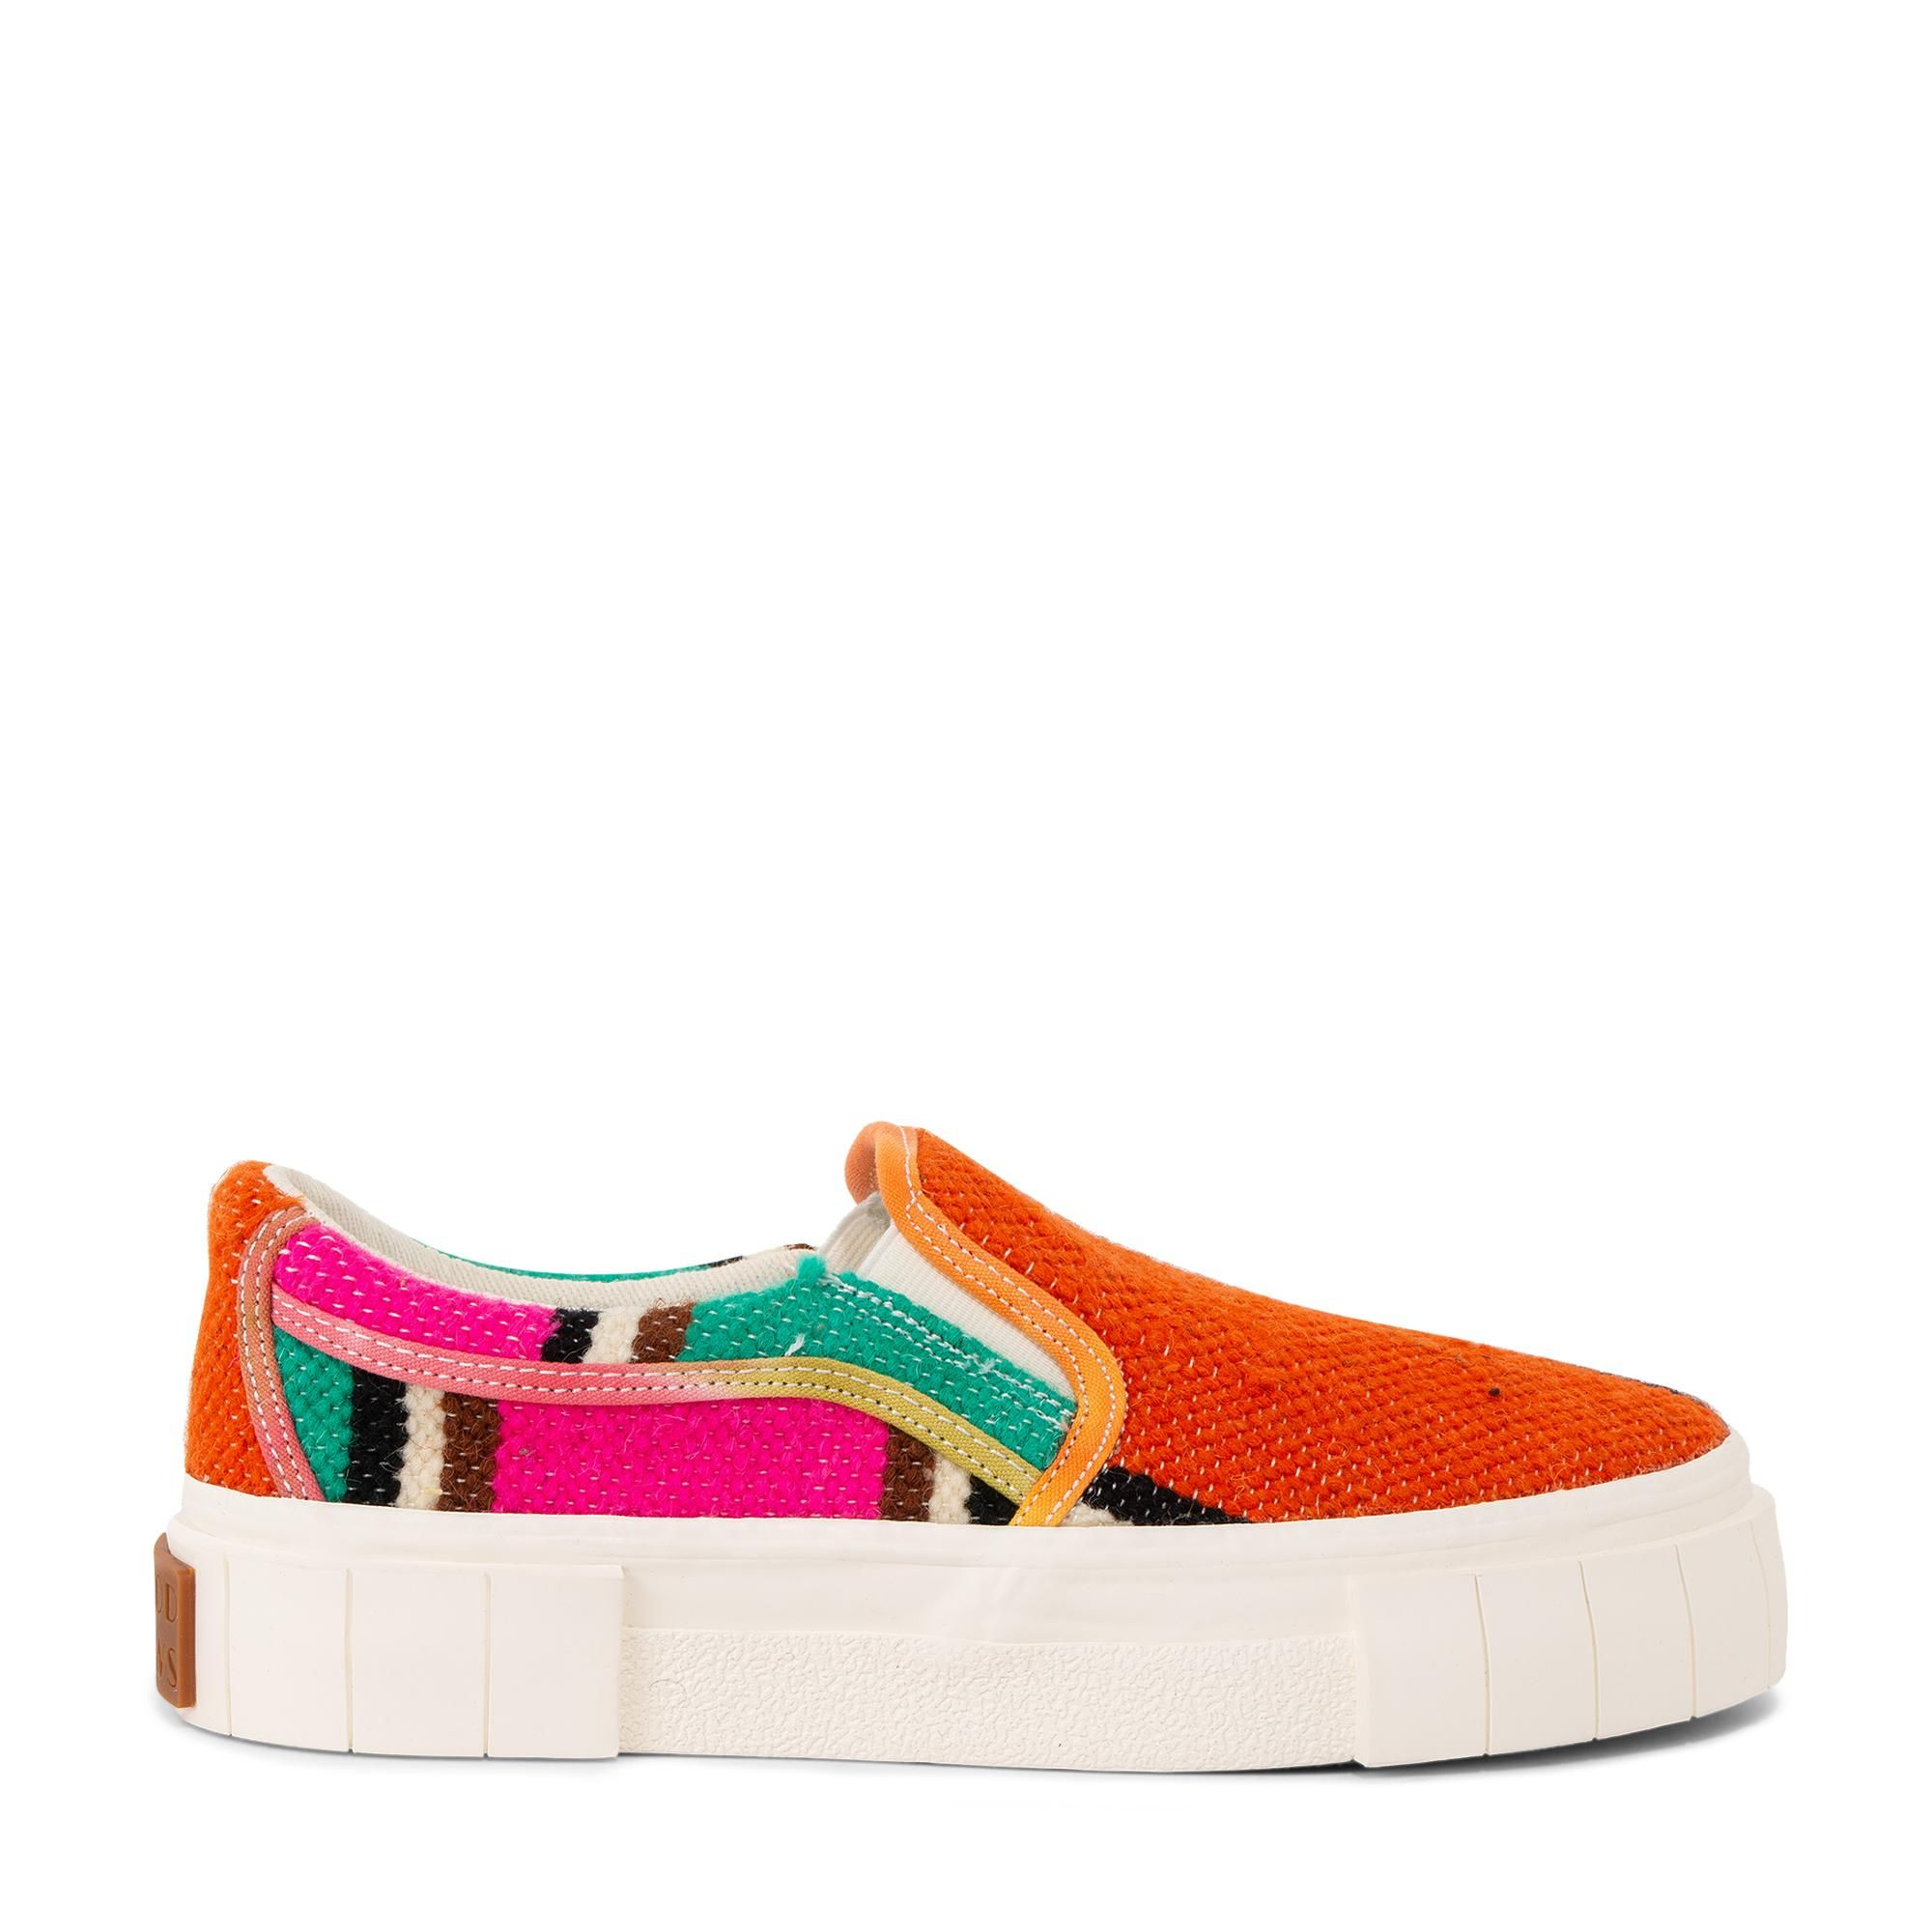 Yess Moroccan slip-on sneakers